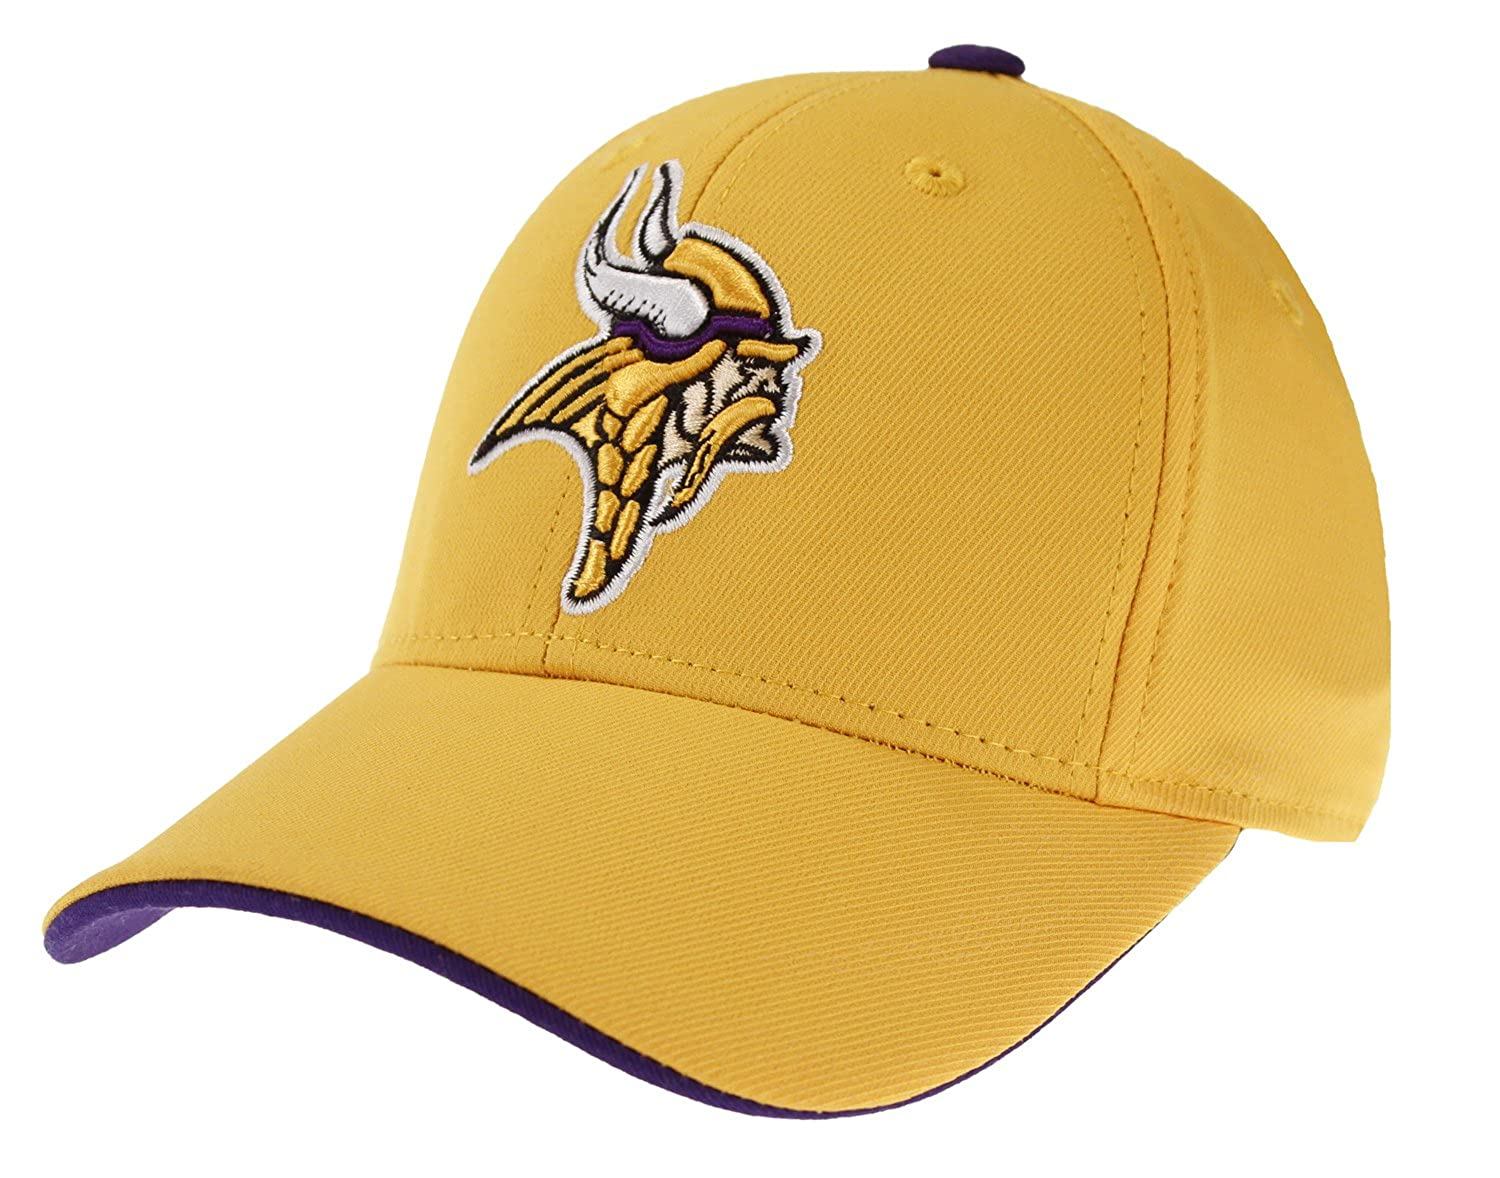 Amazon.com   Minnesota Vikings NFL Youth Performance Flex Cap Hat (BOYS  8-20)   Novelty Baseball Caps   Sports   Outdoors b41ad1c62a9